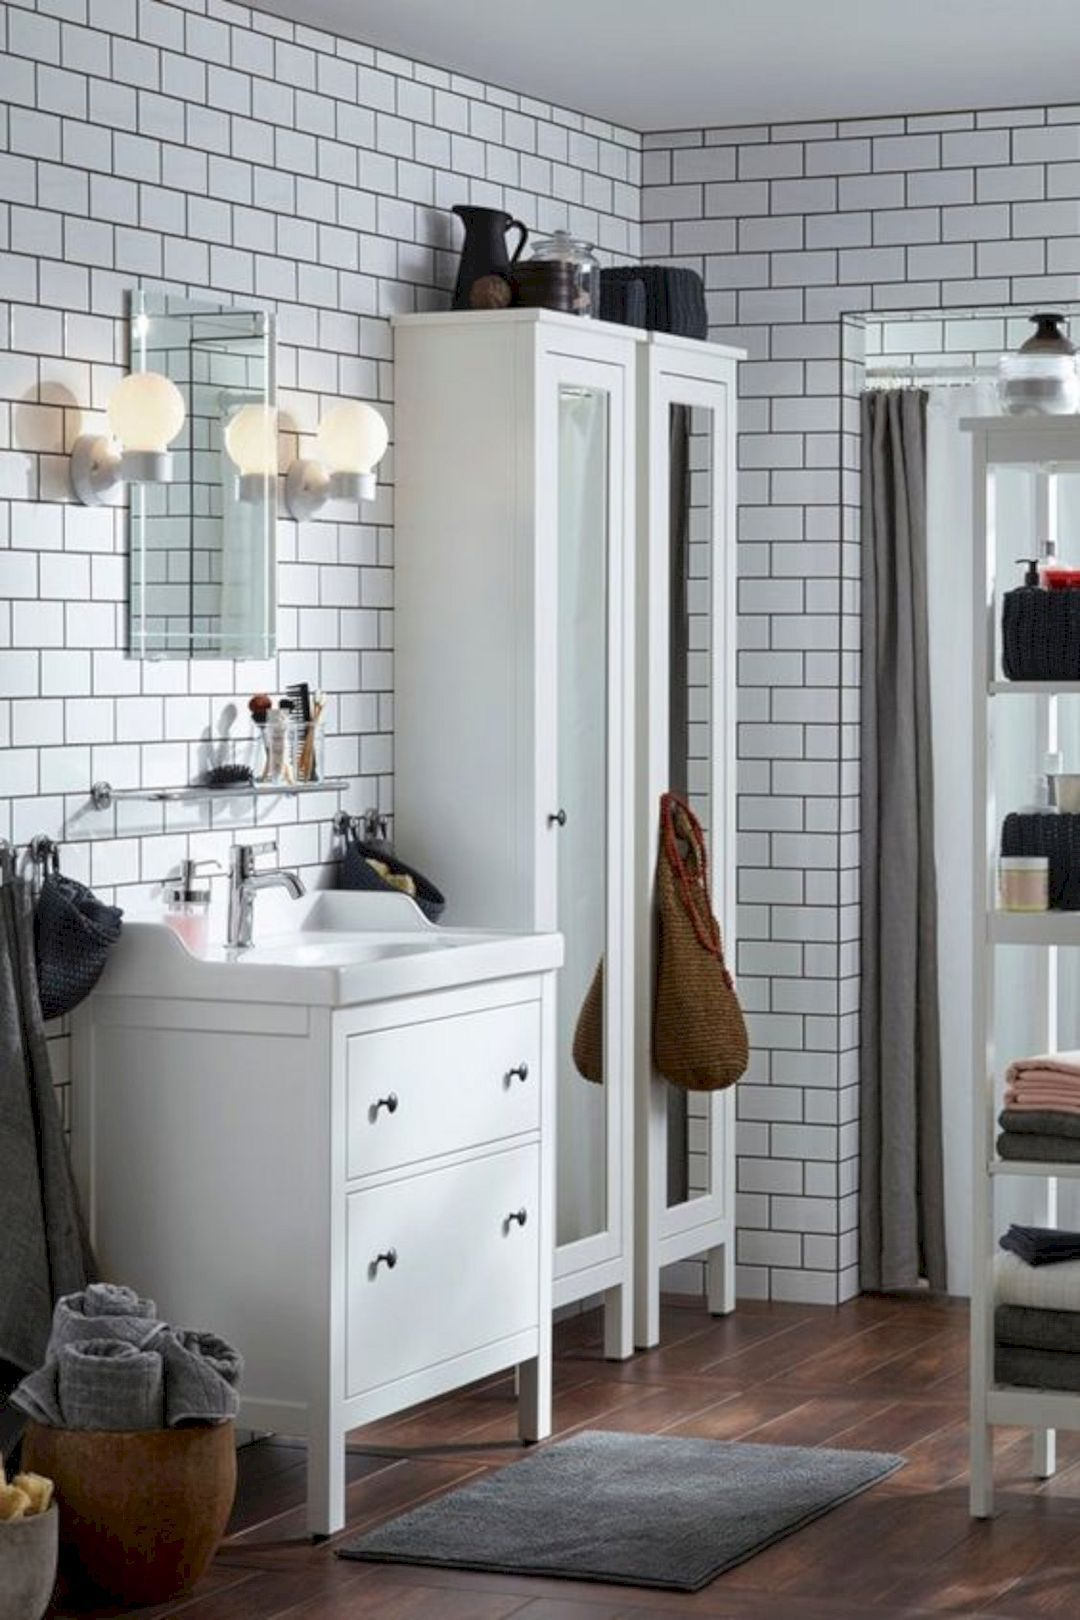 Bathroom Design Ikea Glamorous 15 Inspiring Bathroom Design Ideas With Ikea  Bathroom Designs Inspiration Design